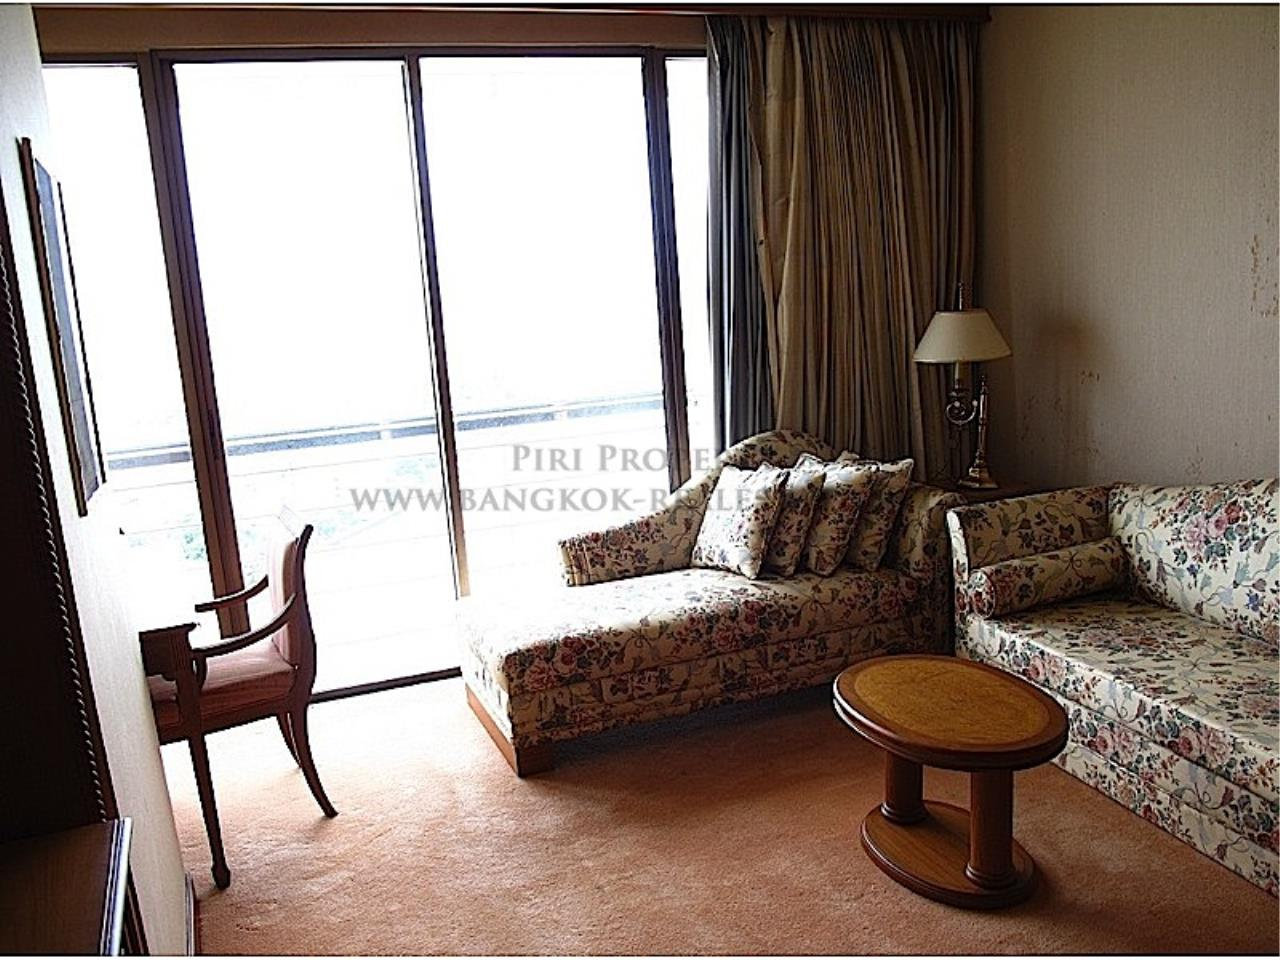 Piri Property Agency's Rattanakosin View Mansion - Large Unit for Sale 2